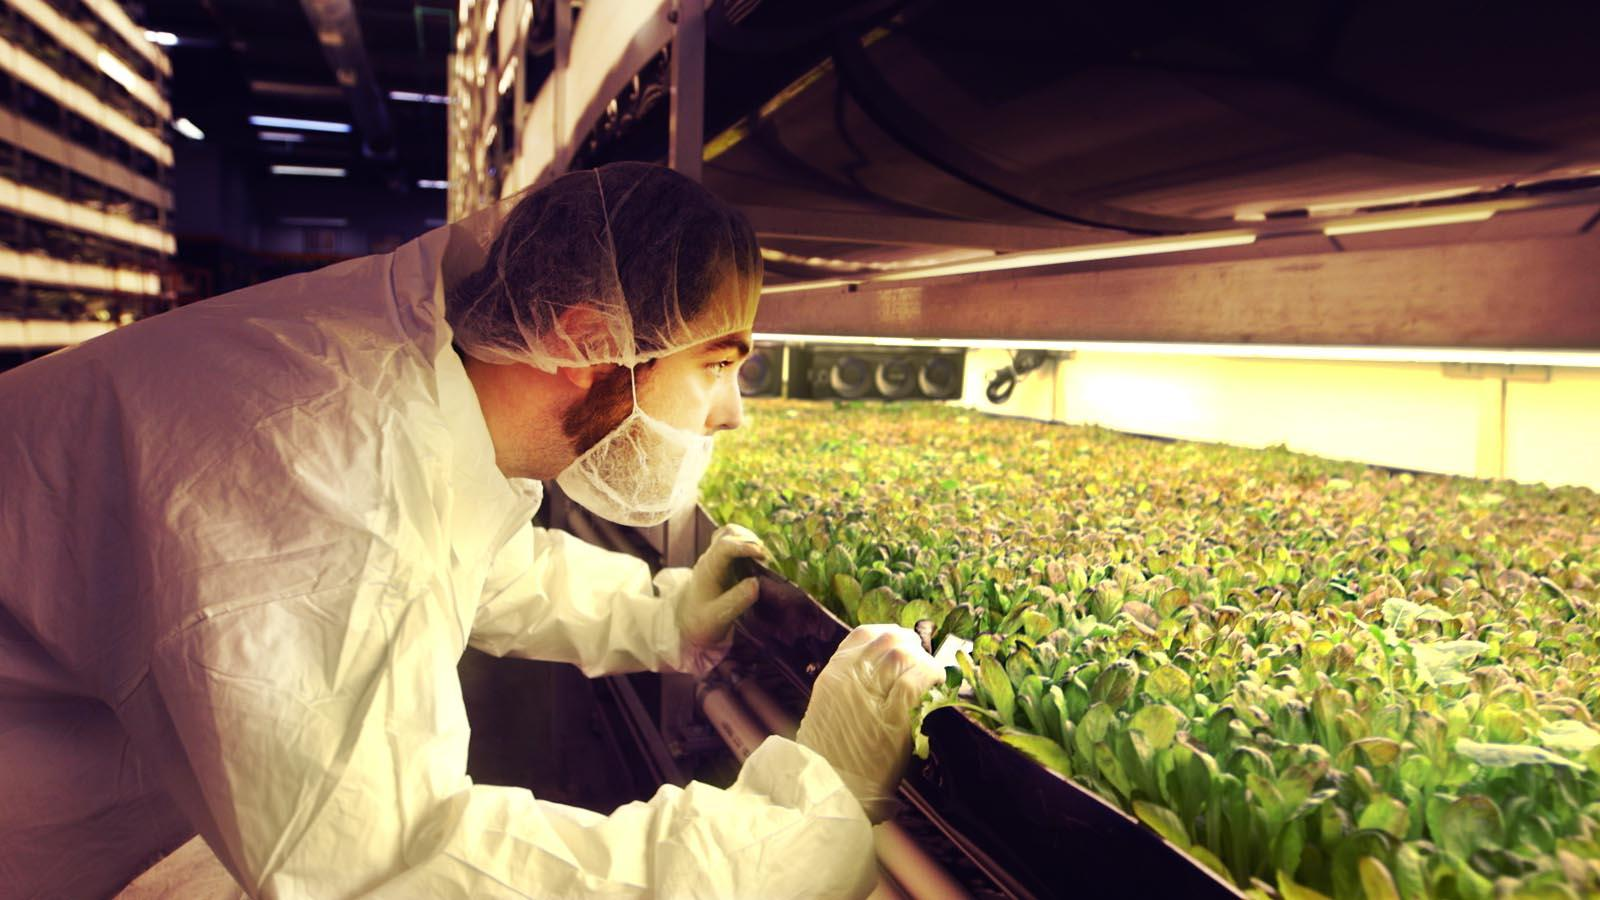 Growing Up: Vertical Farms Evolve to End Hunger